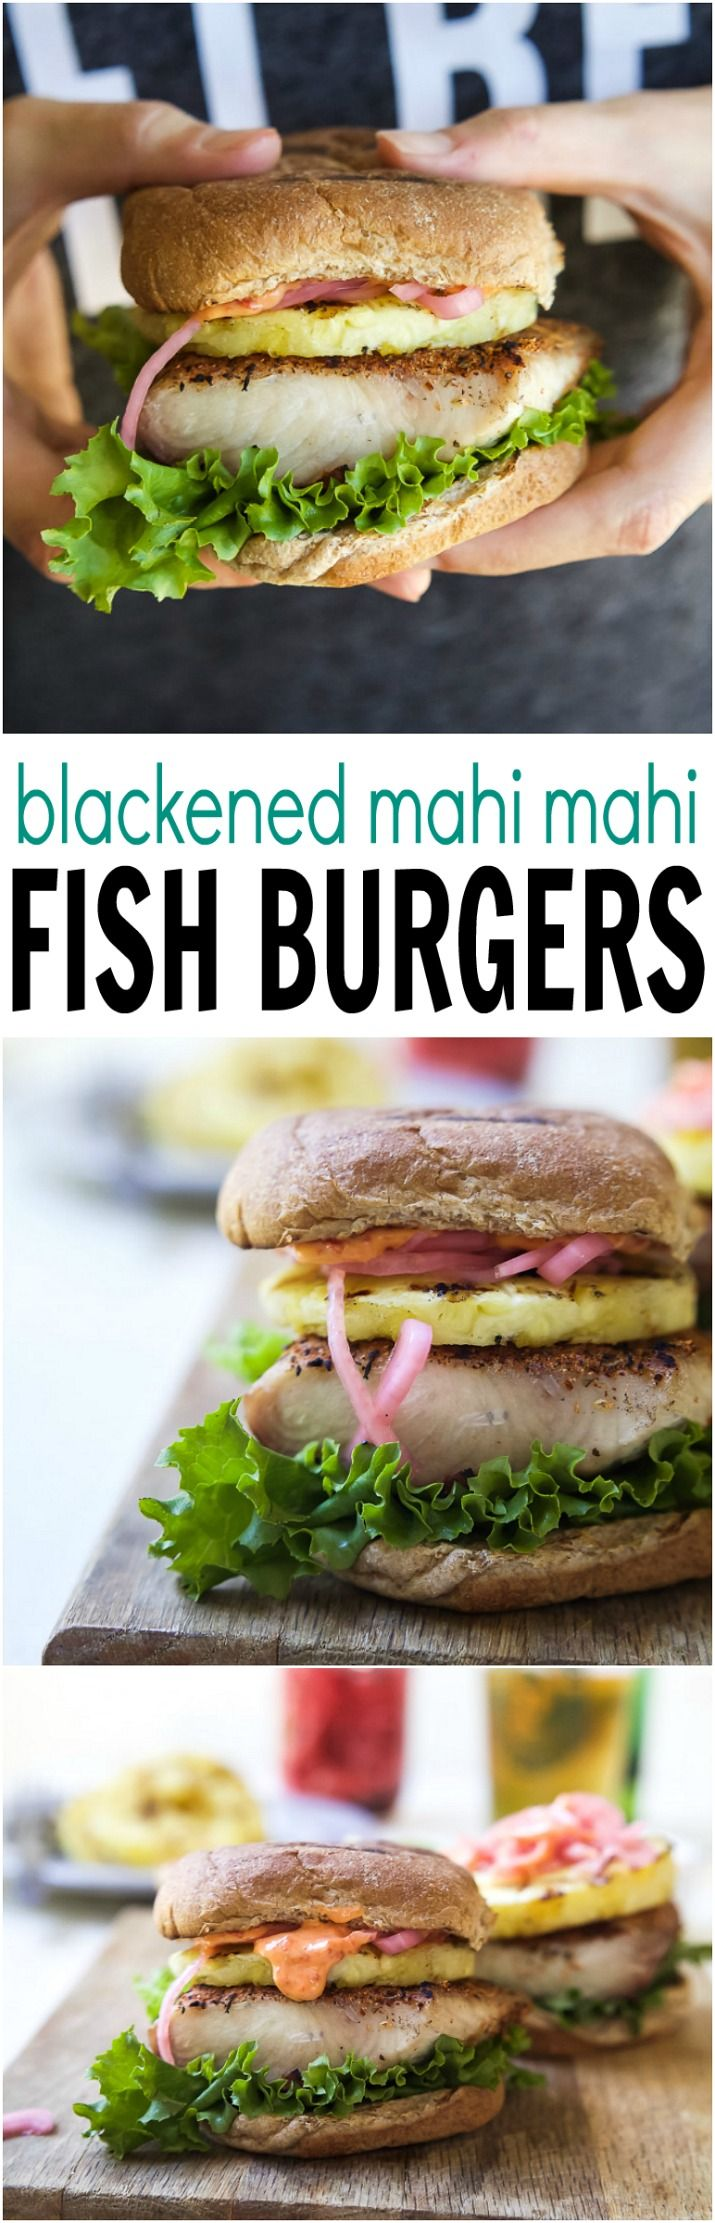 A burger you can sink your teeth into! Blackened Mahi Mahi Fish Burger topped with grilled pineapple and sweet spicy Piquillo Pepper Aioli, the best part is it only takes 15 minutes to make! | joyfulhealthyeats.com